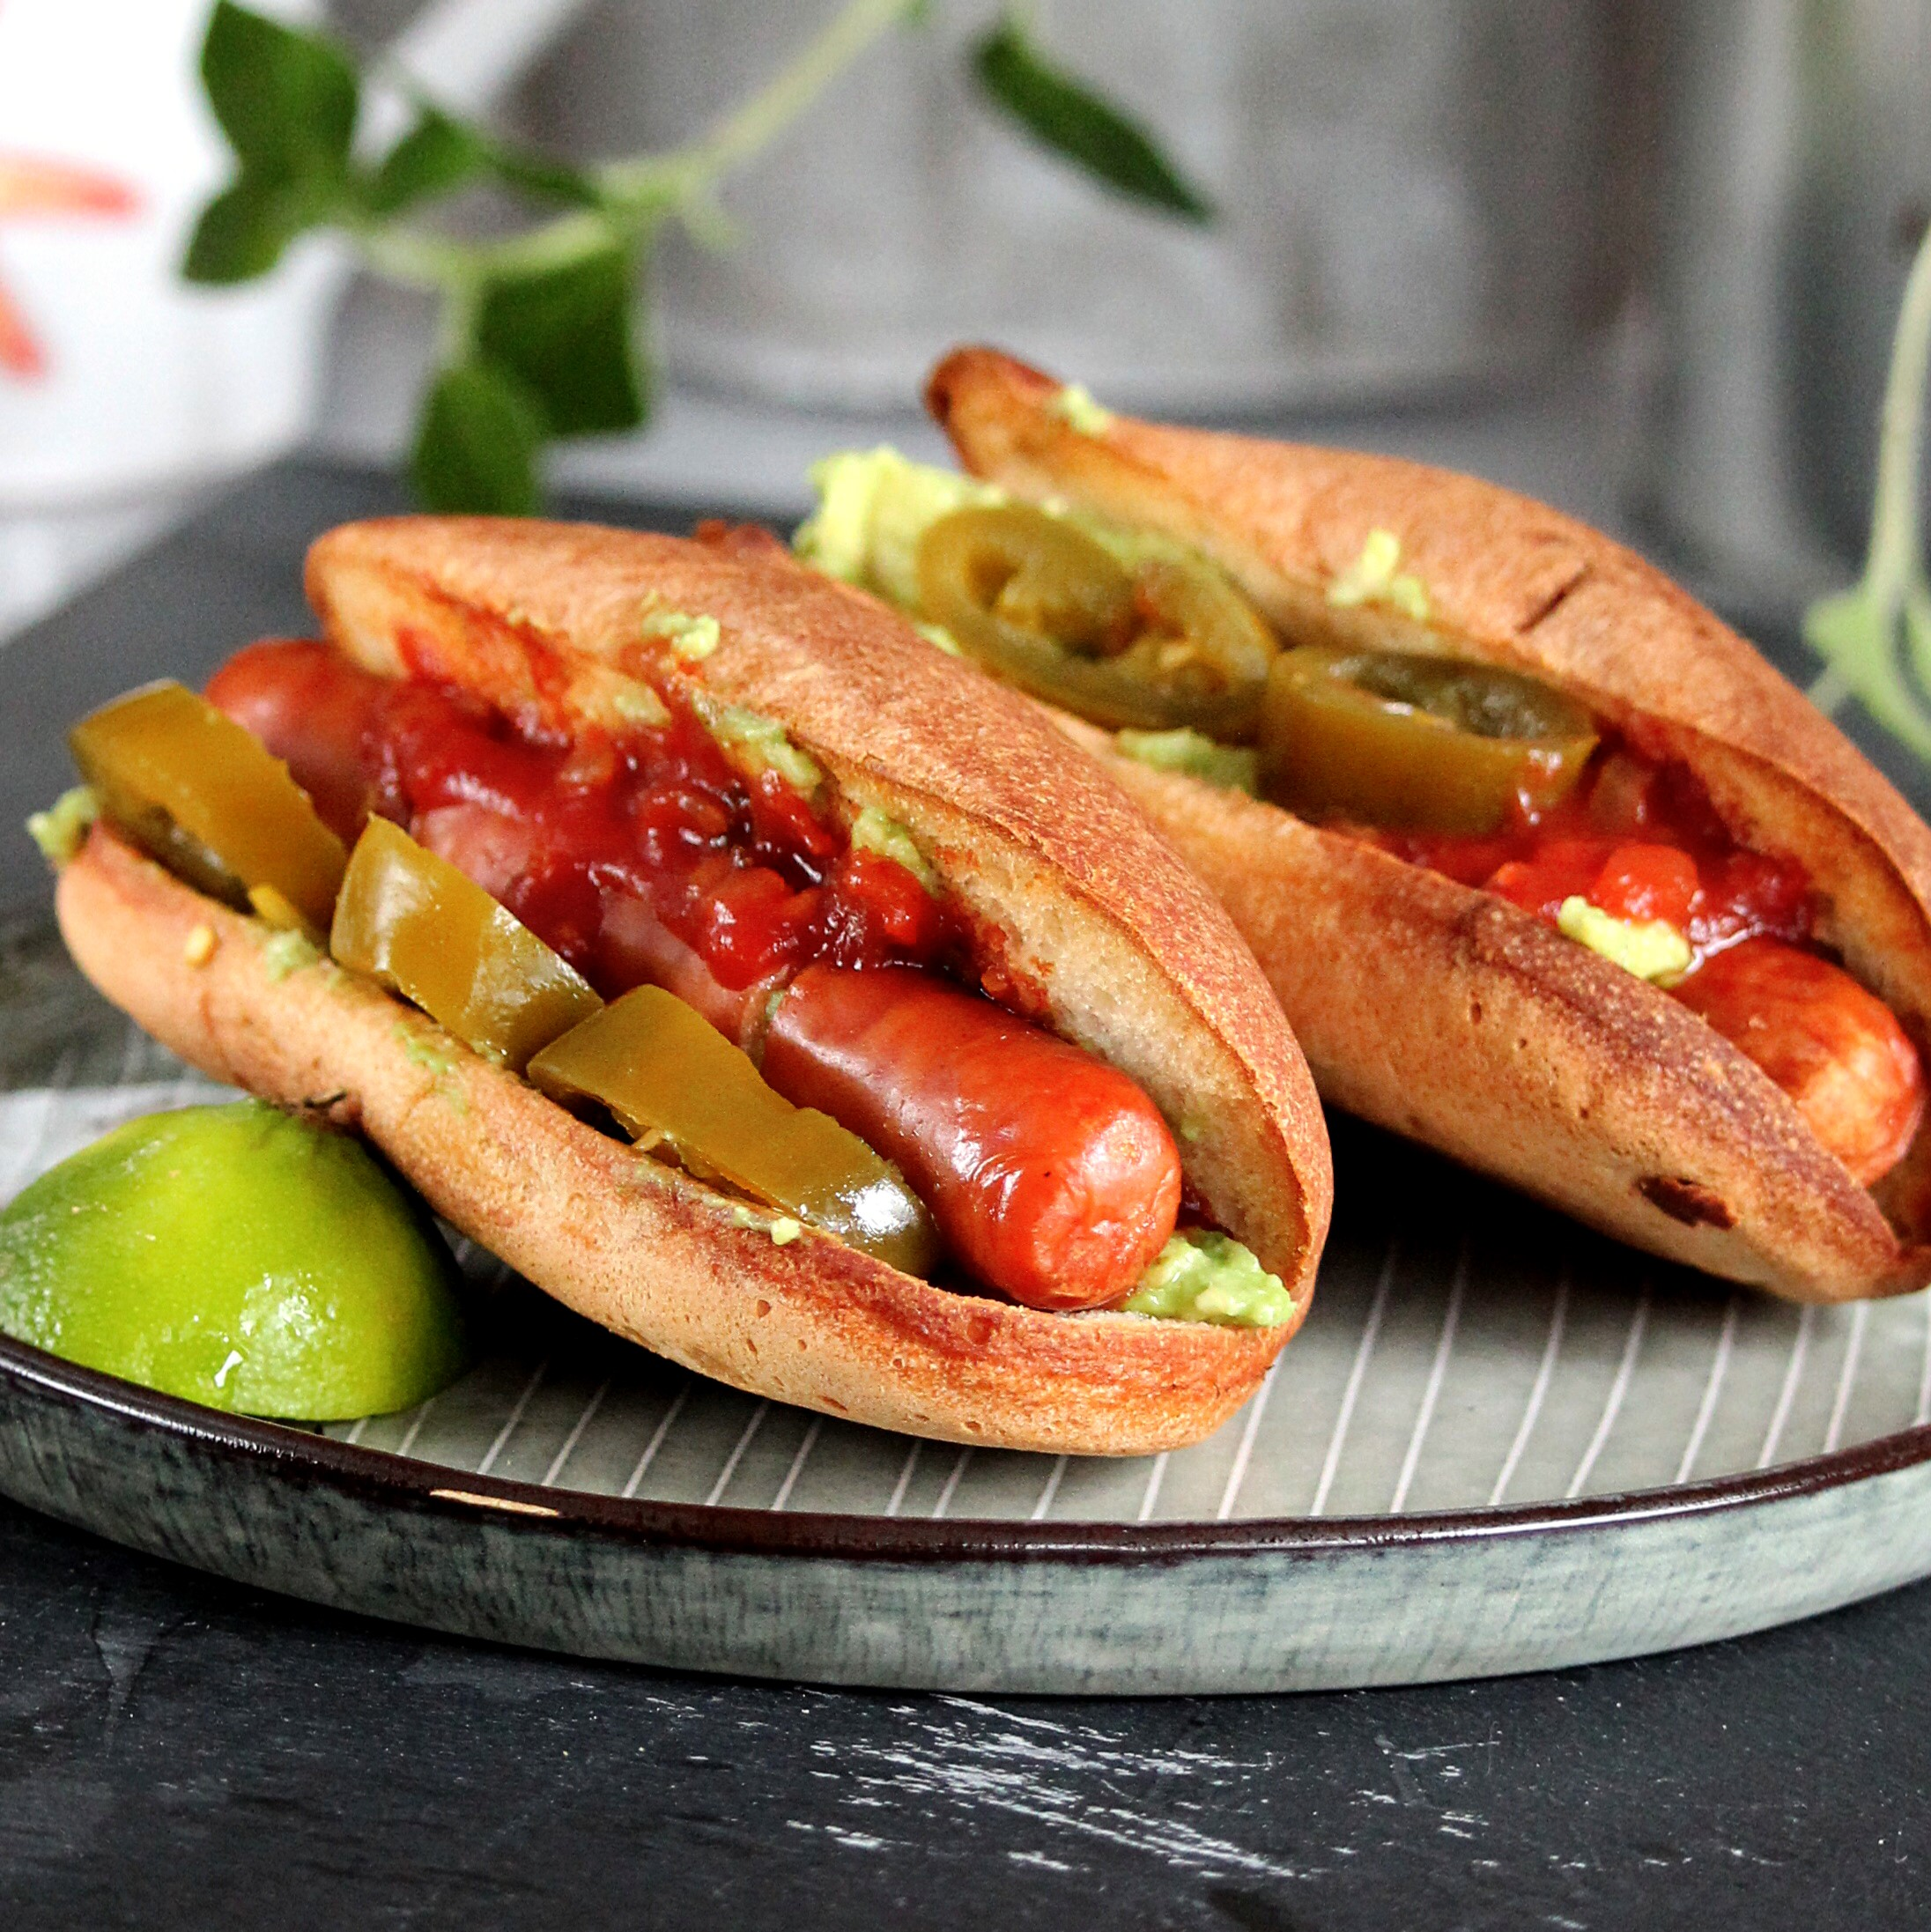 """Hot dogs cooked in an air fryer inside their buns, then topped with taco fixings, will redefine Taco Tuesday,"" says Buckwheat Queen. ""The air fryer renders the hot dogs crispy on the outside and juicy on the inside."""